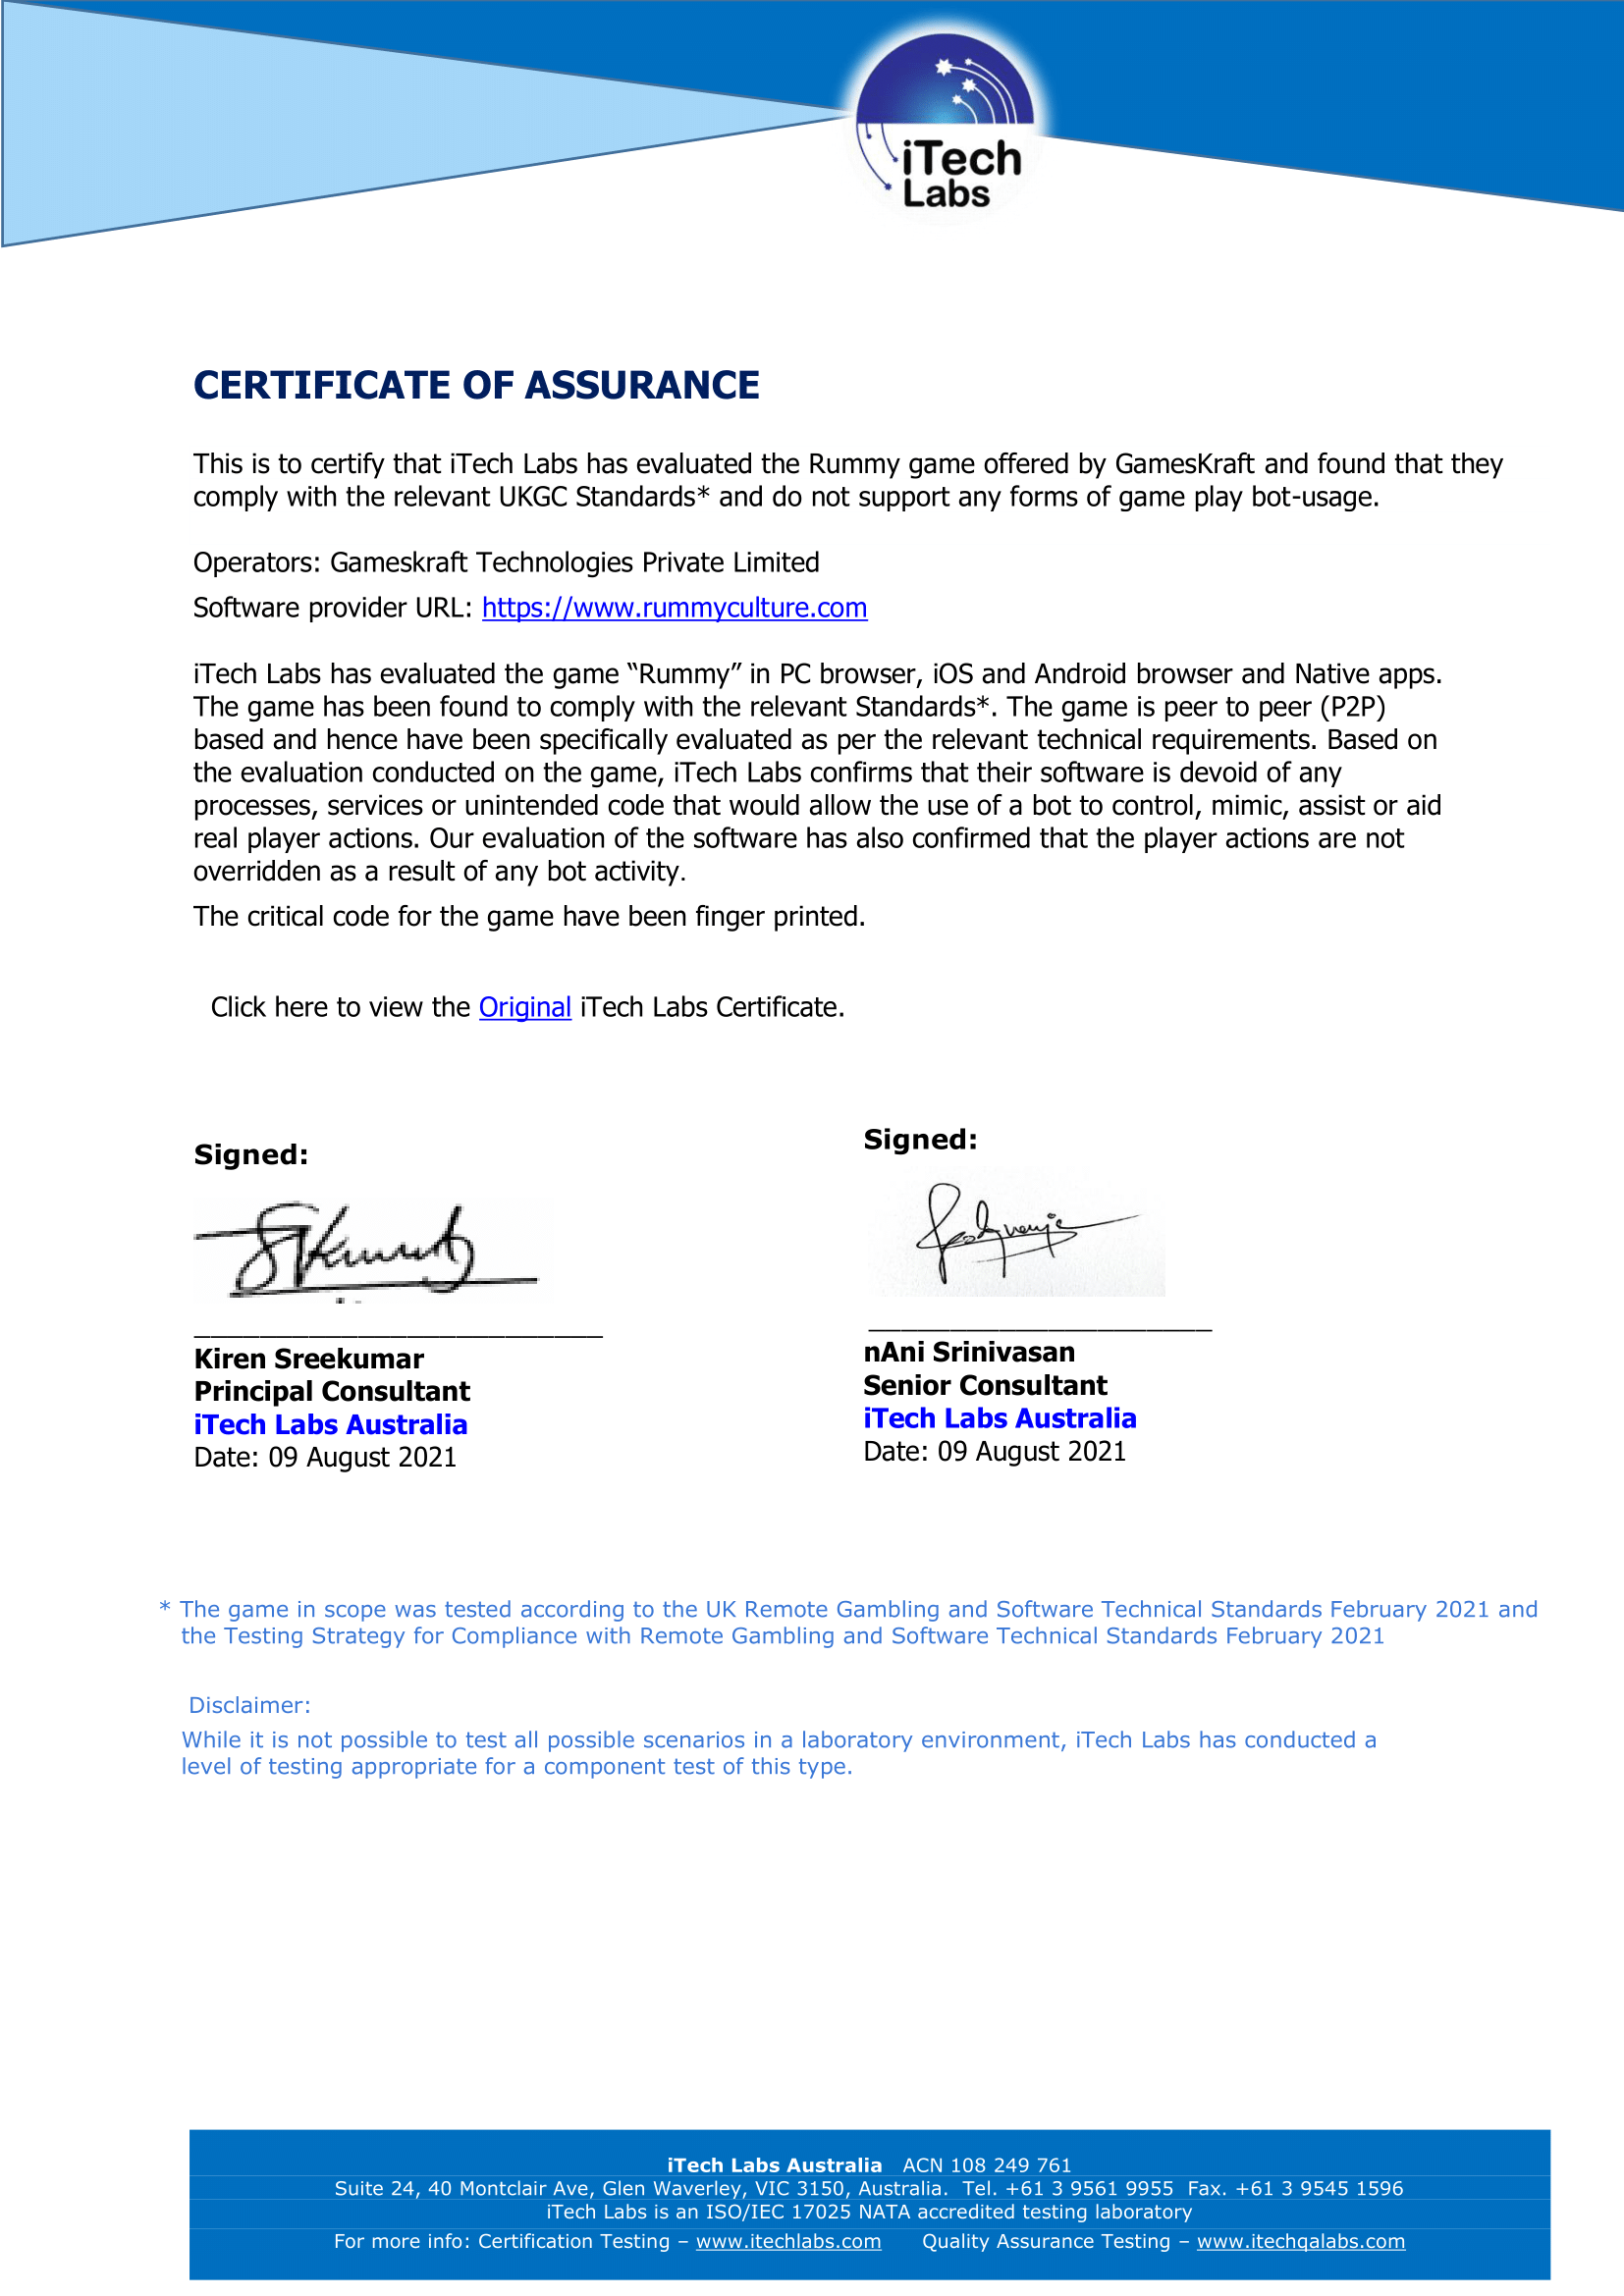 Rummyculture No Bot certificate